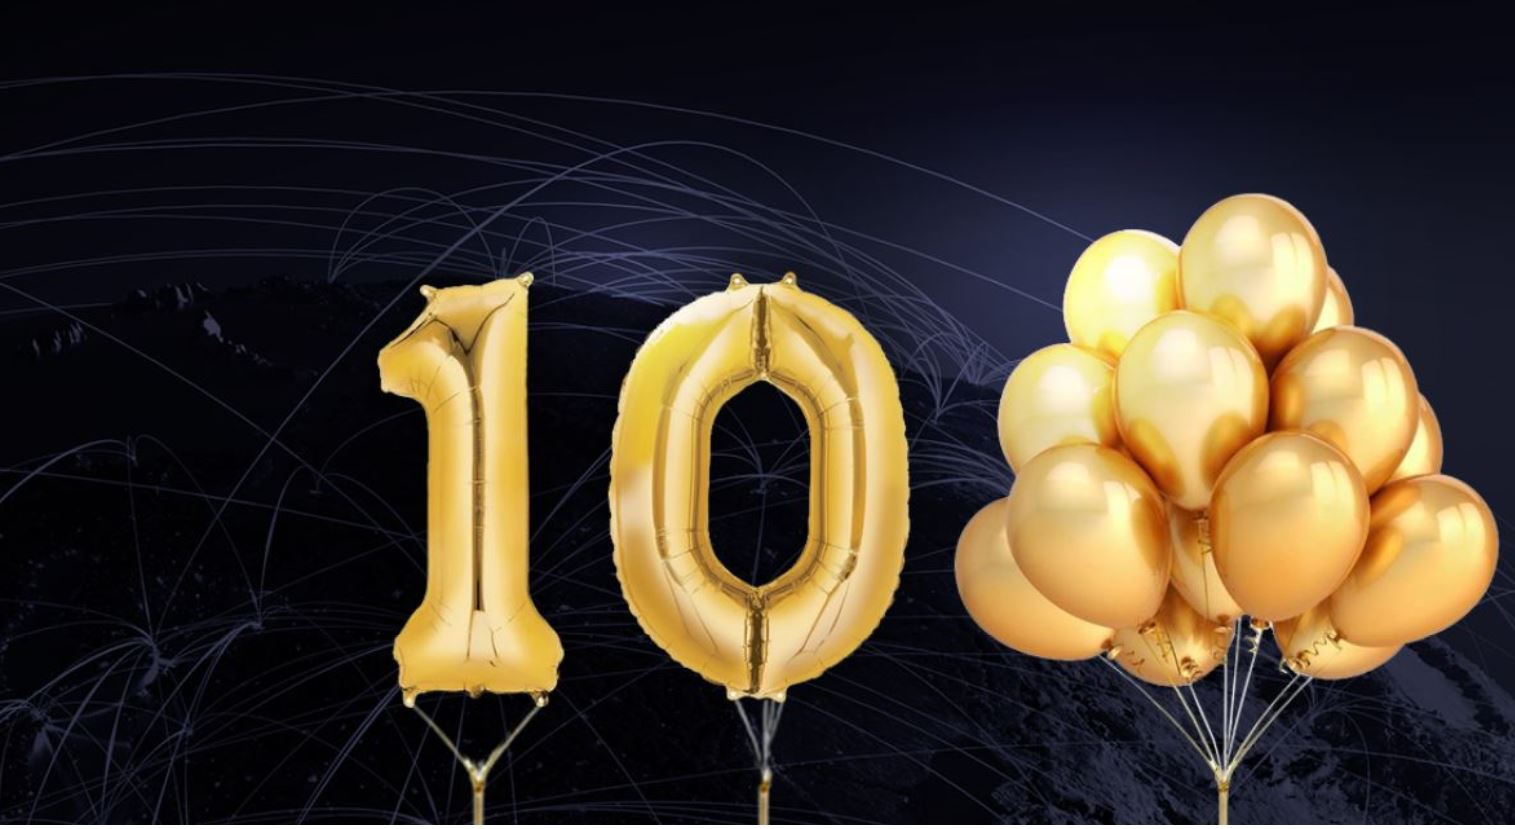 10 years of EMBIQ!